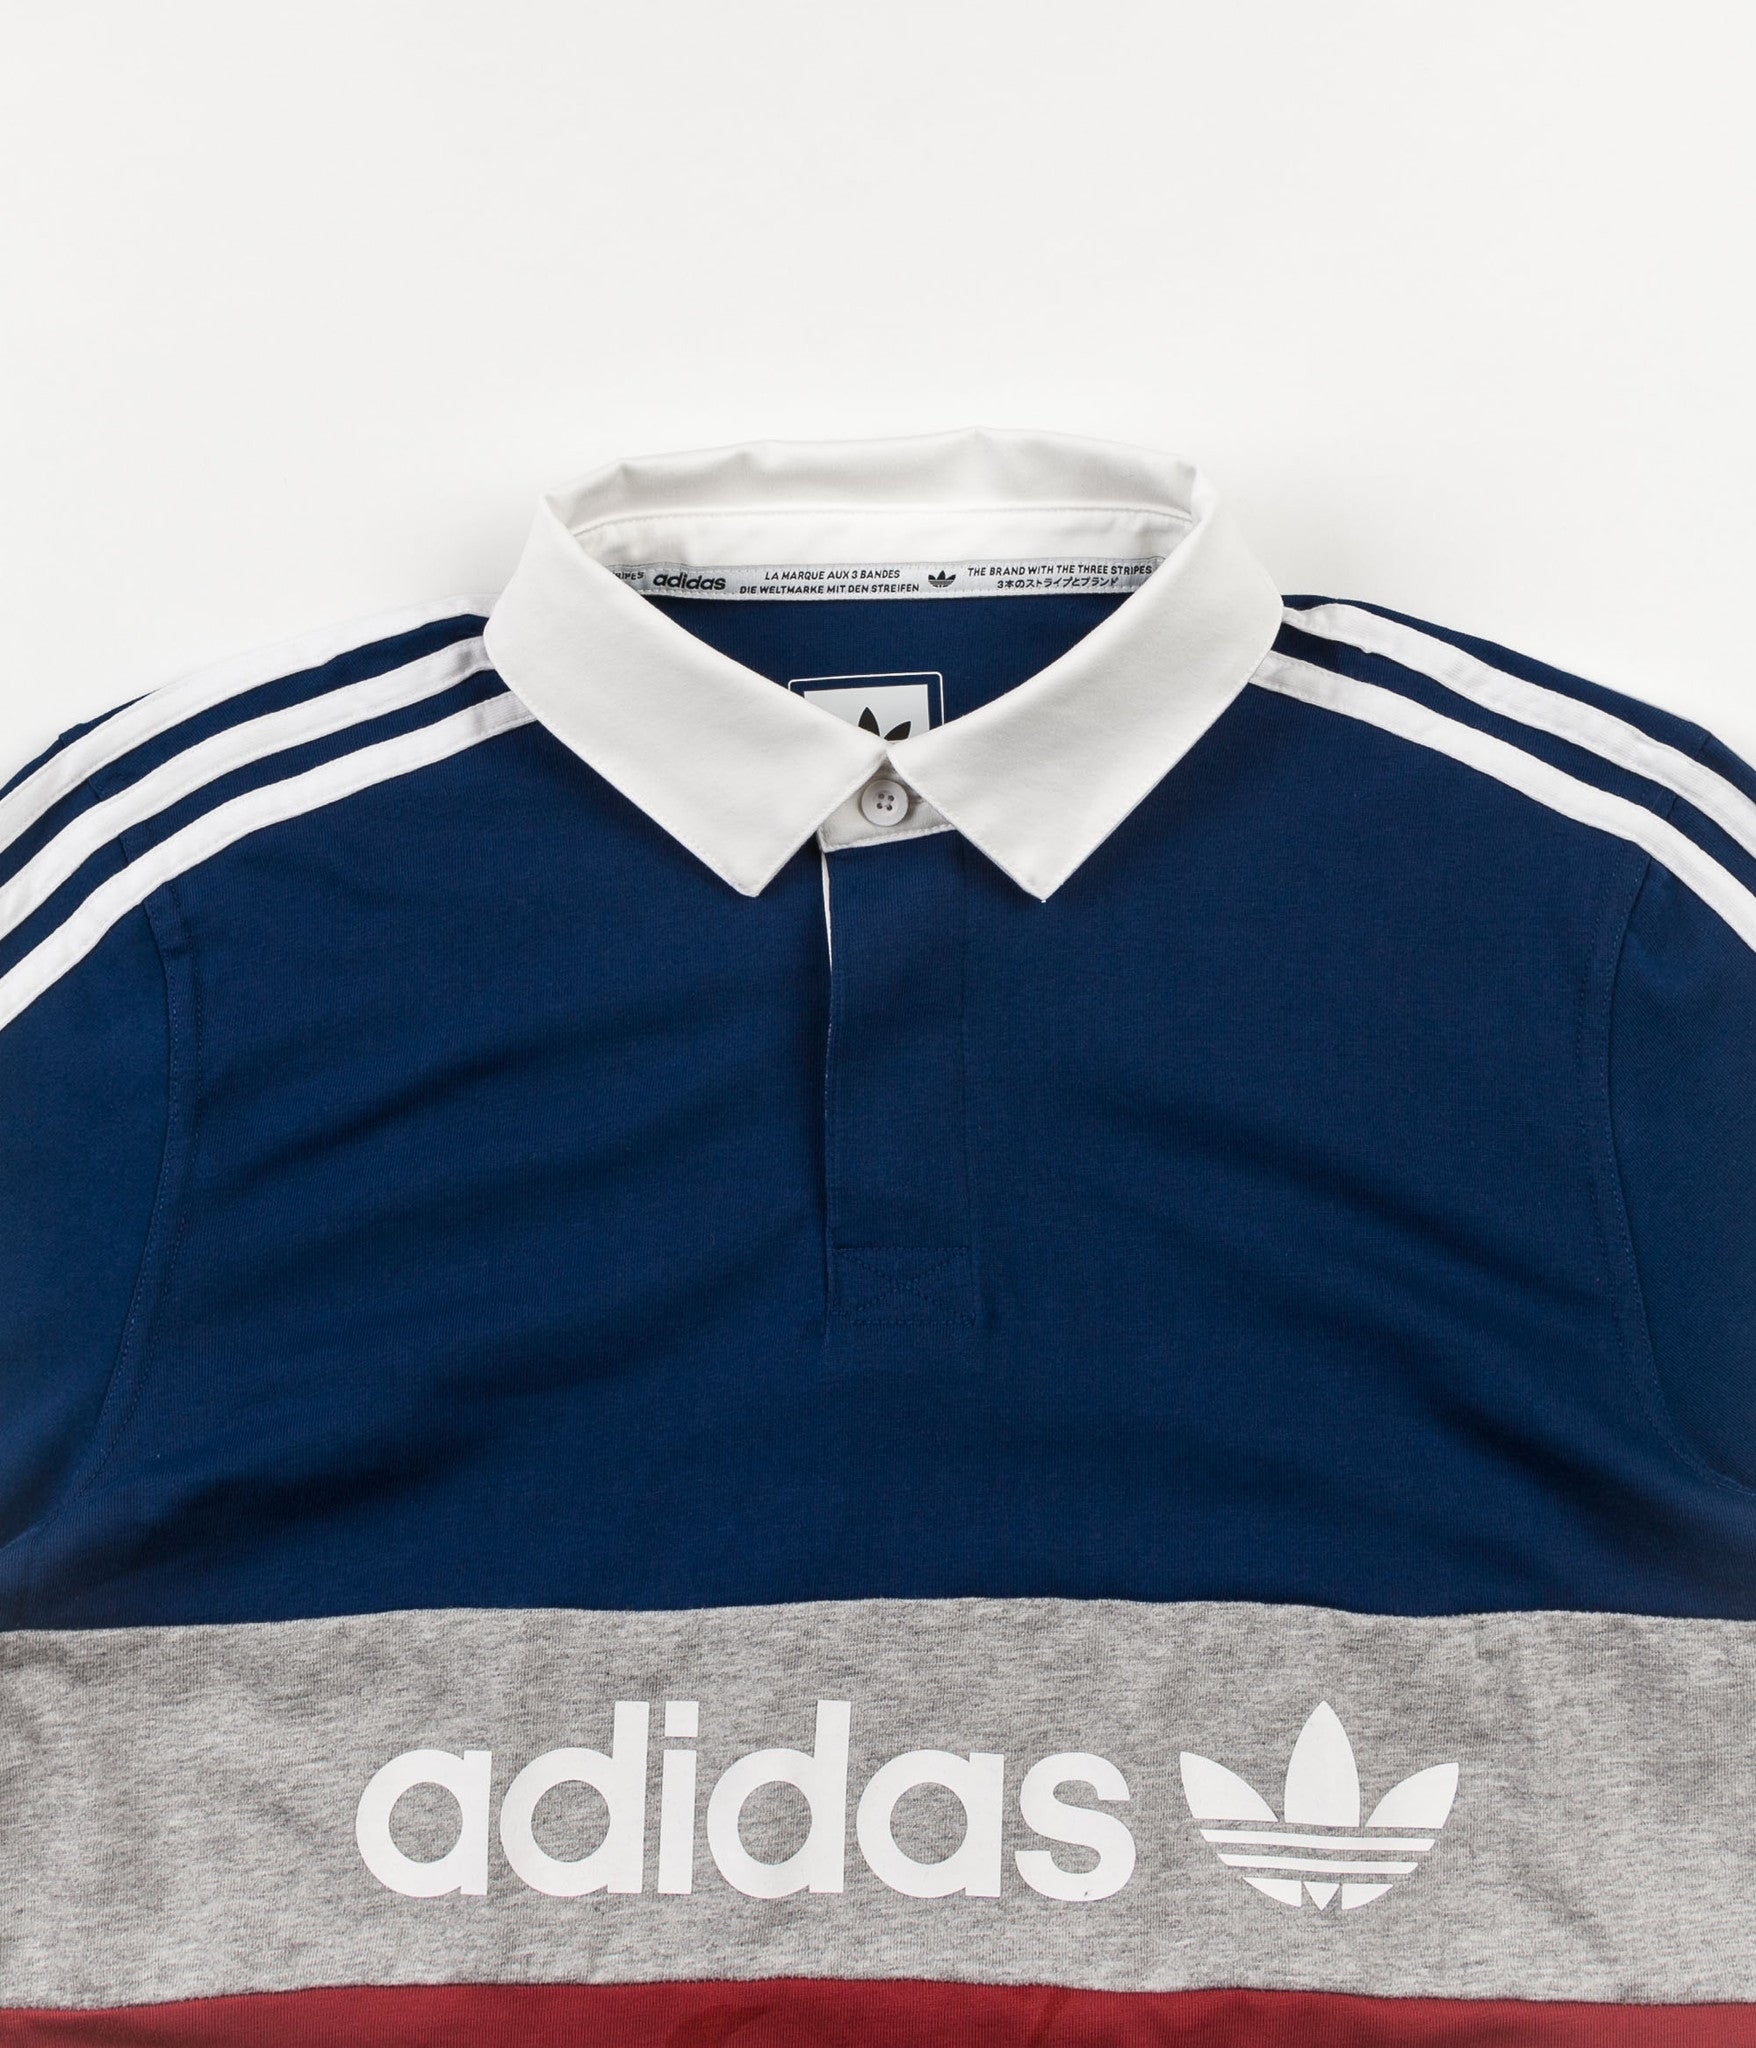 Adidas Rugby Polo Shirt - Mystery Red / Mystery Blue / Medium Grey Heather / White